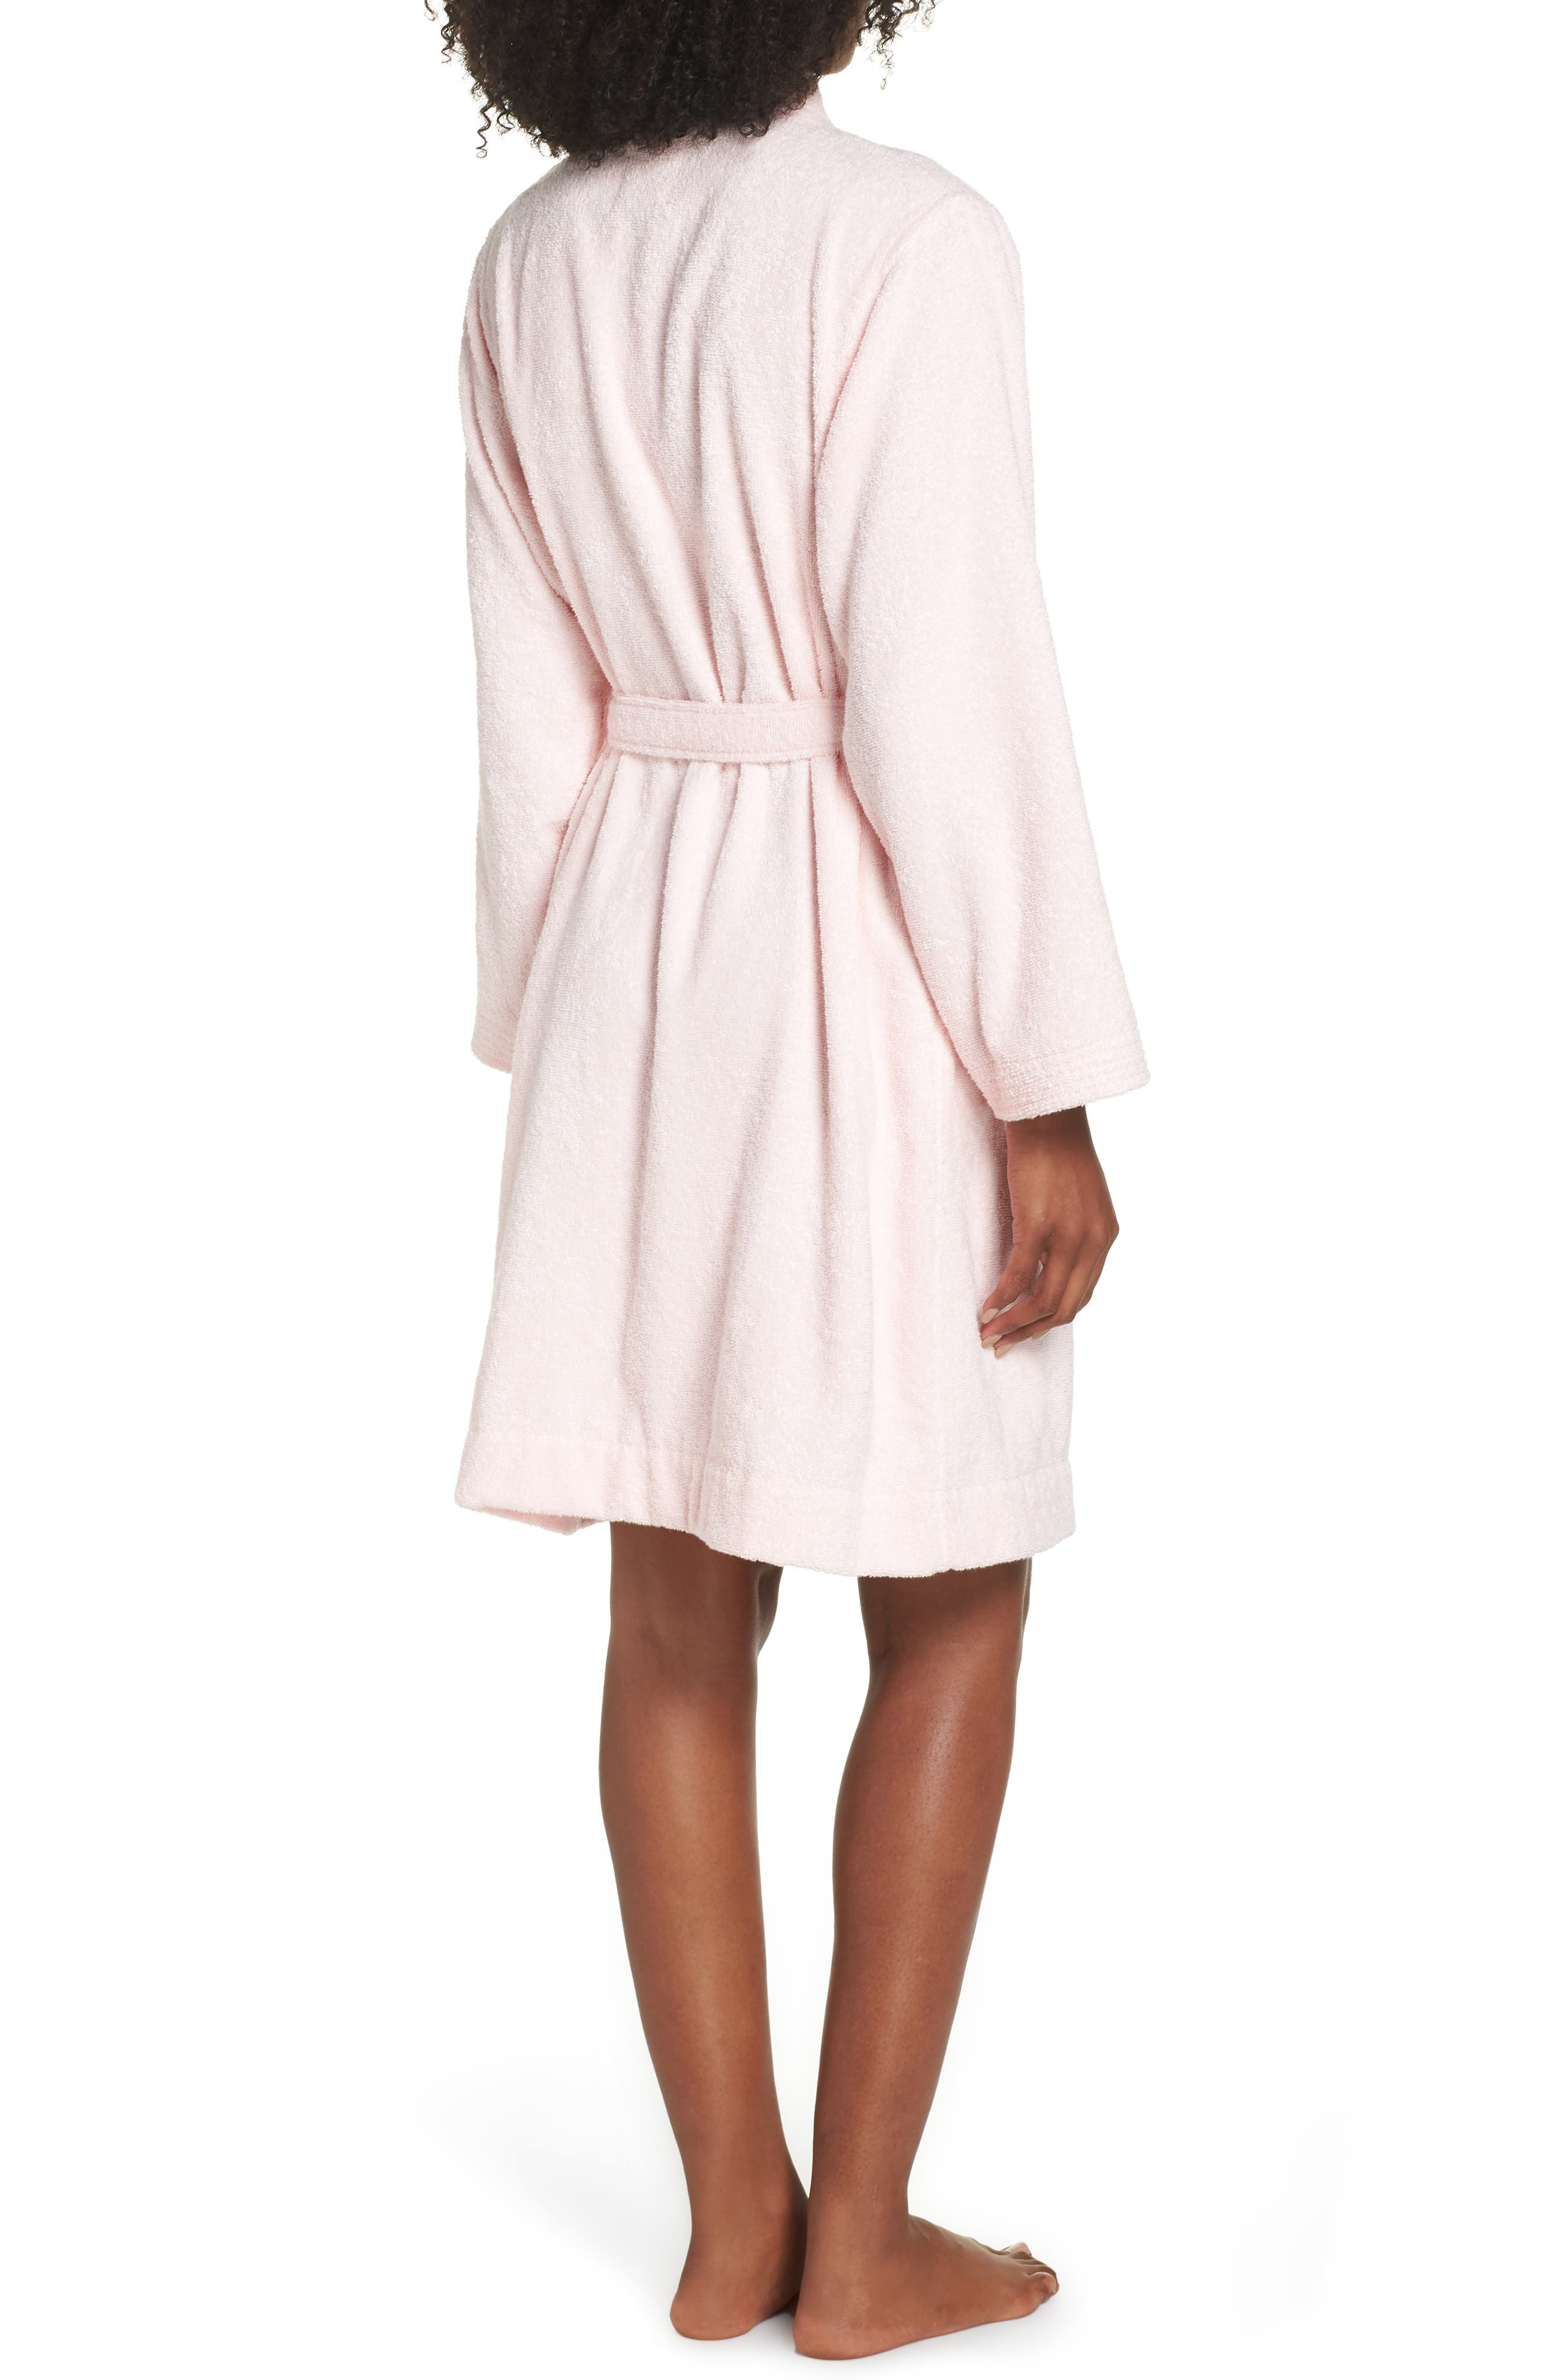 UGG<SUP>®</SUP>, Lorie Terry Short Robe, Alternate thumbnail 2, color, SEASHELL PINK